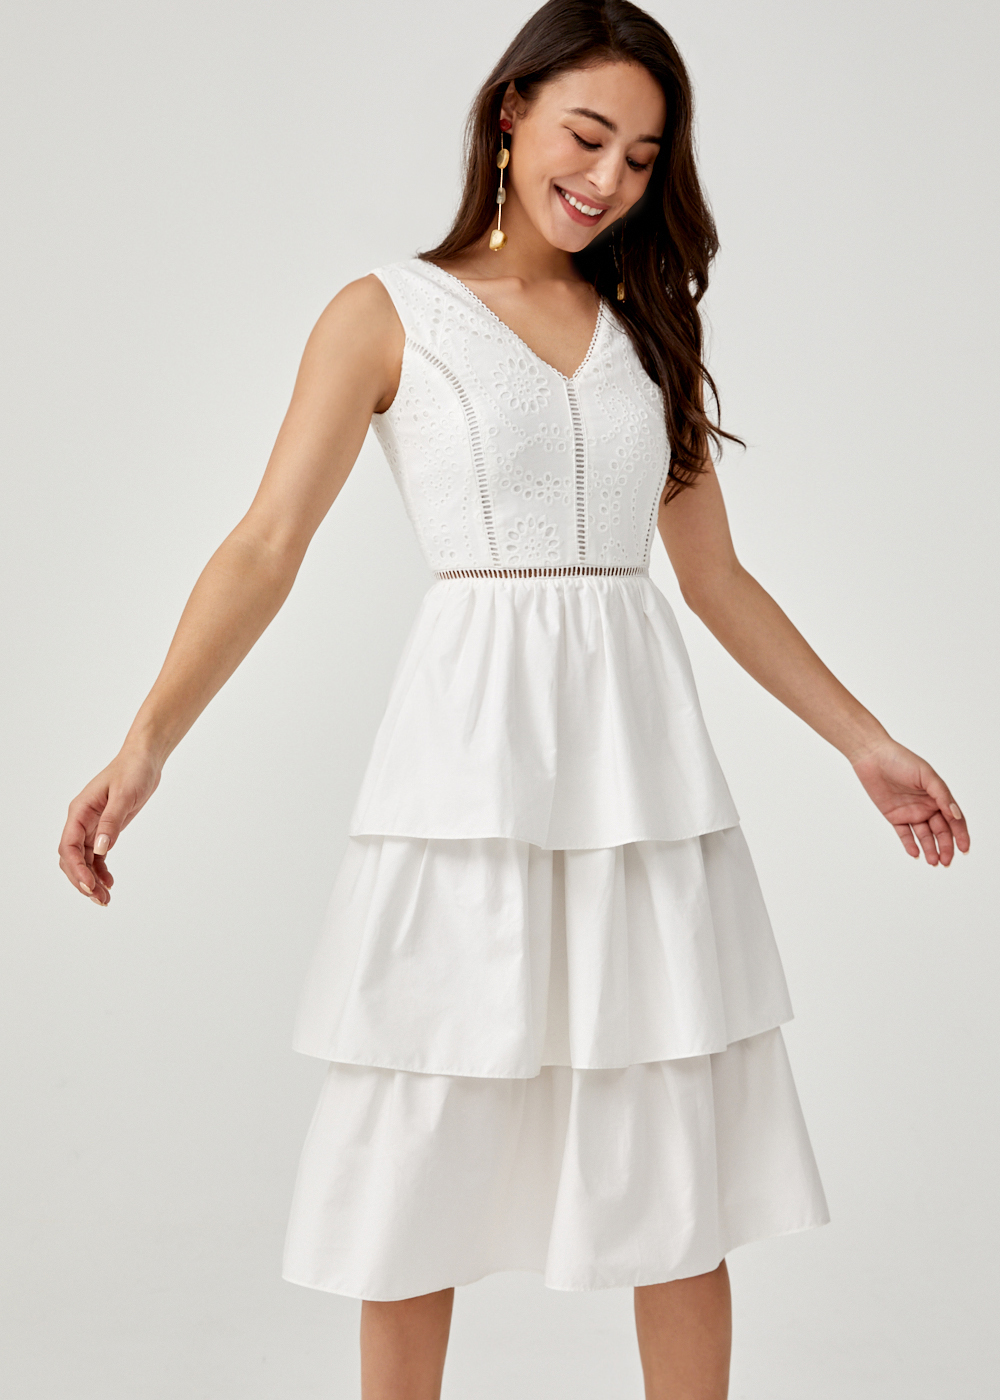 Aleksia Tiered Broderie Anglaise Midi Dress